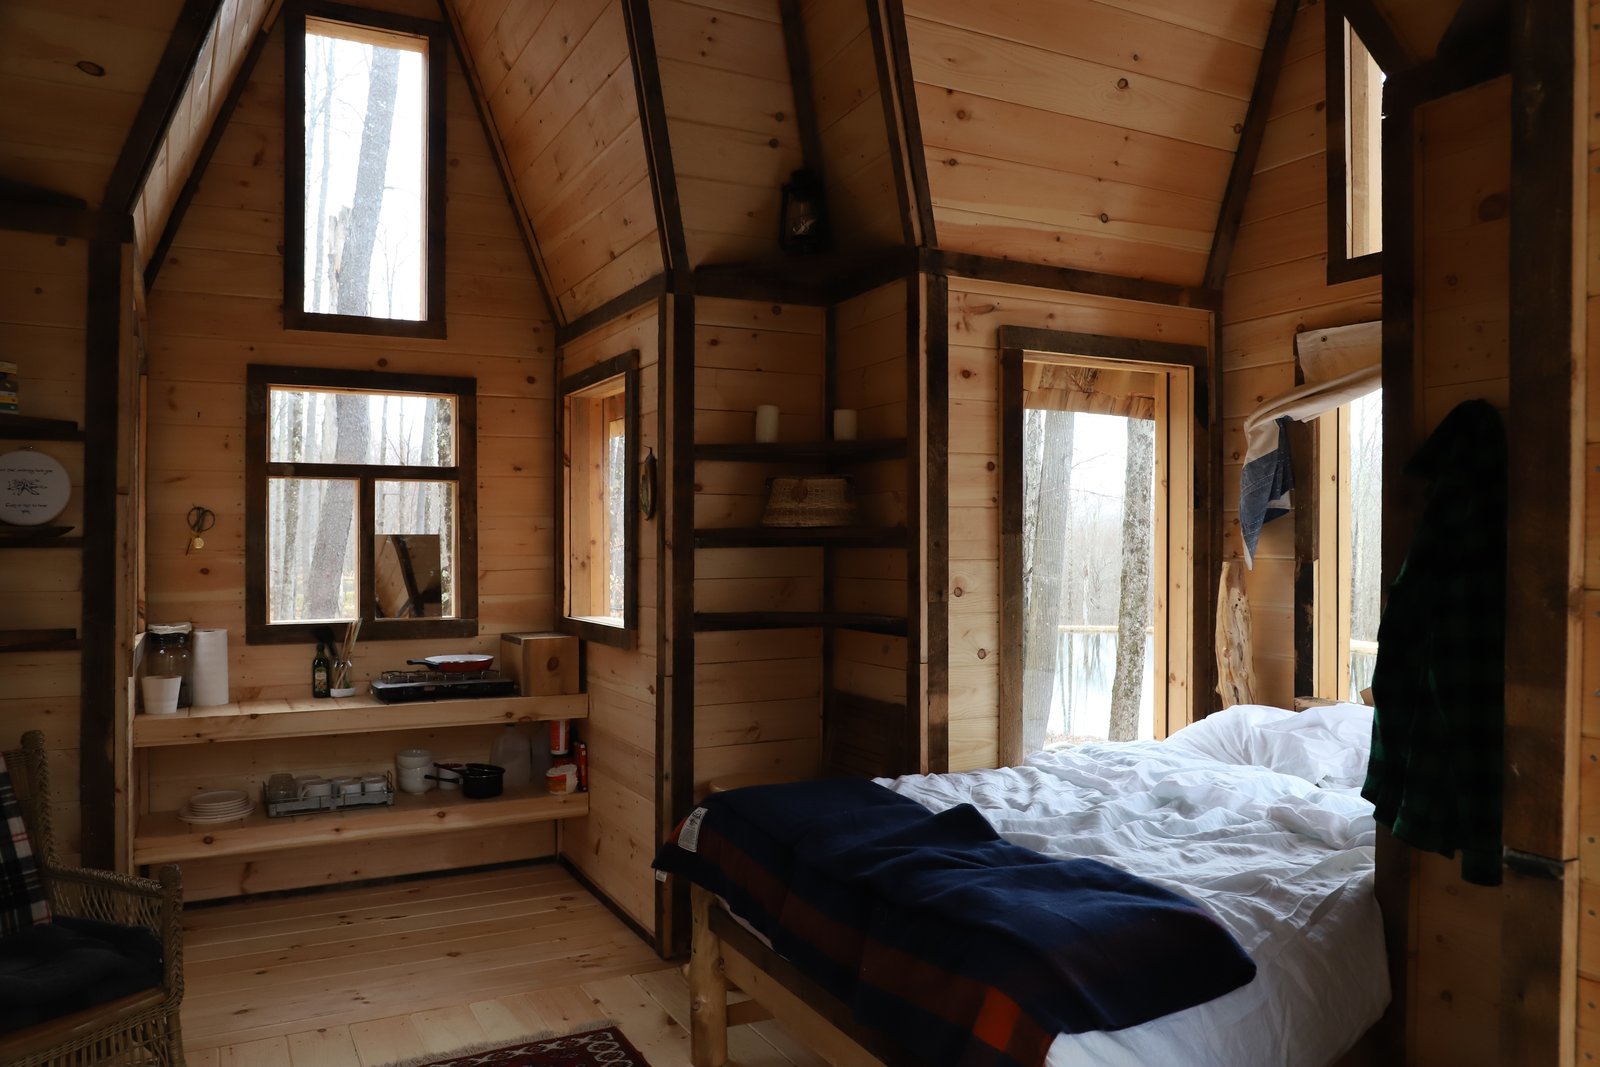 It was built with wood that was salvaged and squirreled away from deconstruction jobs.